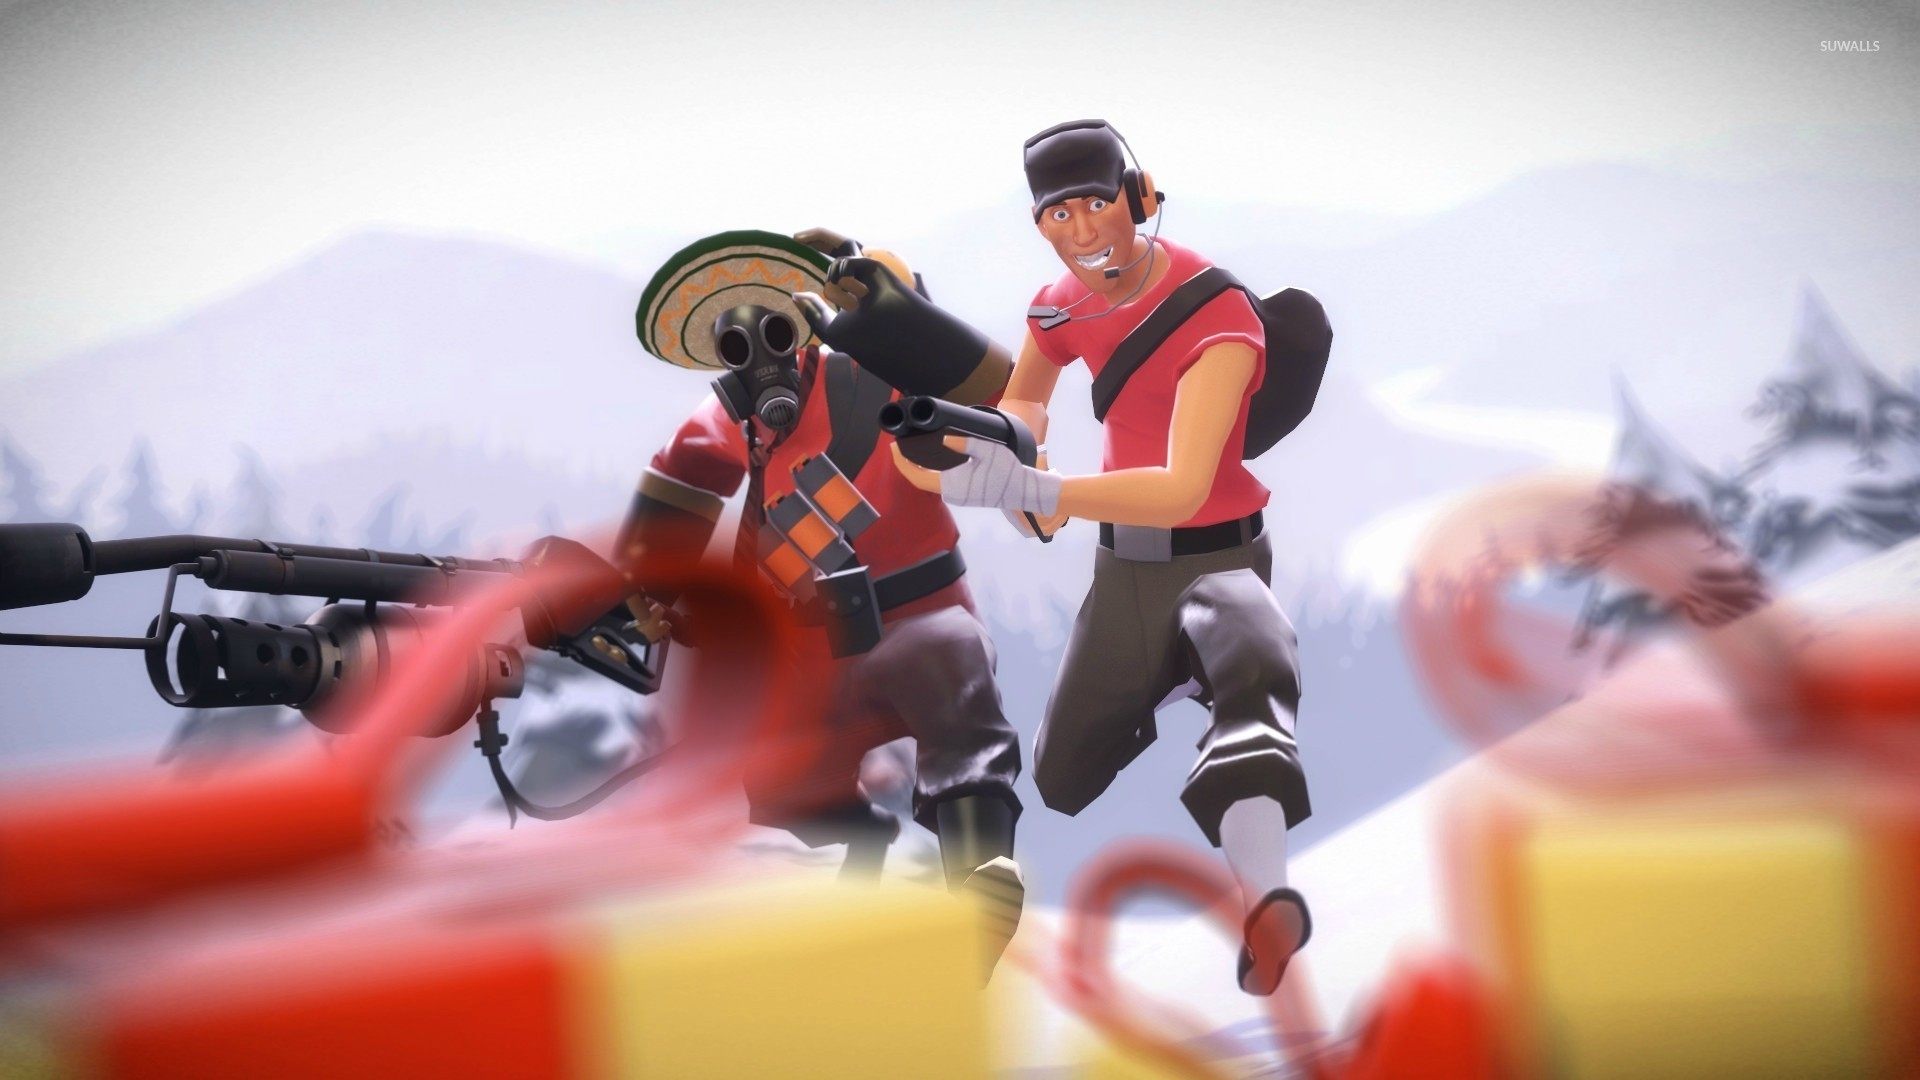 1920x1080 Pyro and Scout - Team Fortress 2 wallpaper  jpg